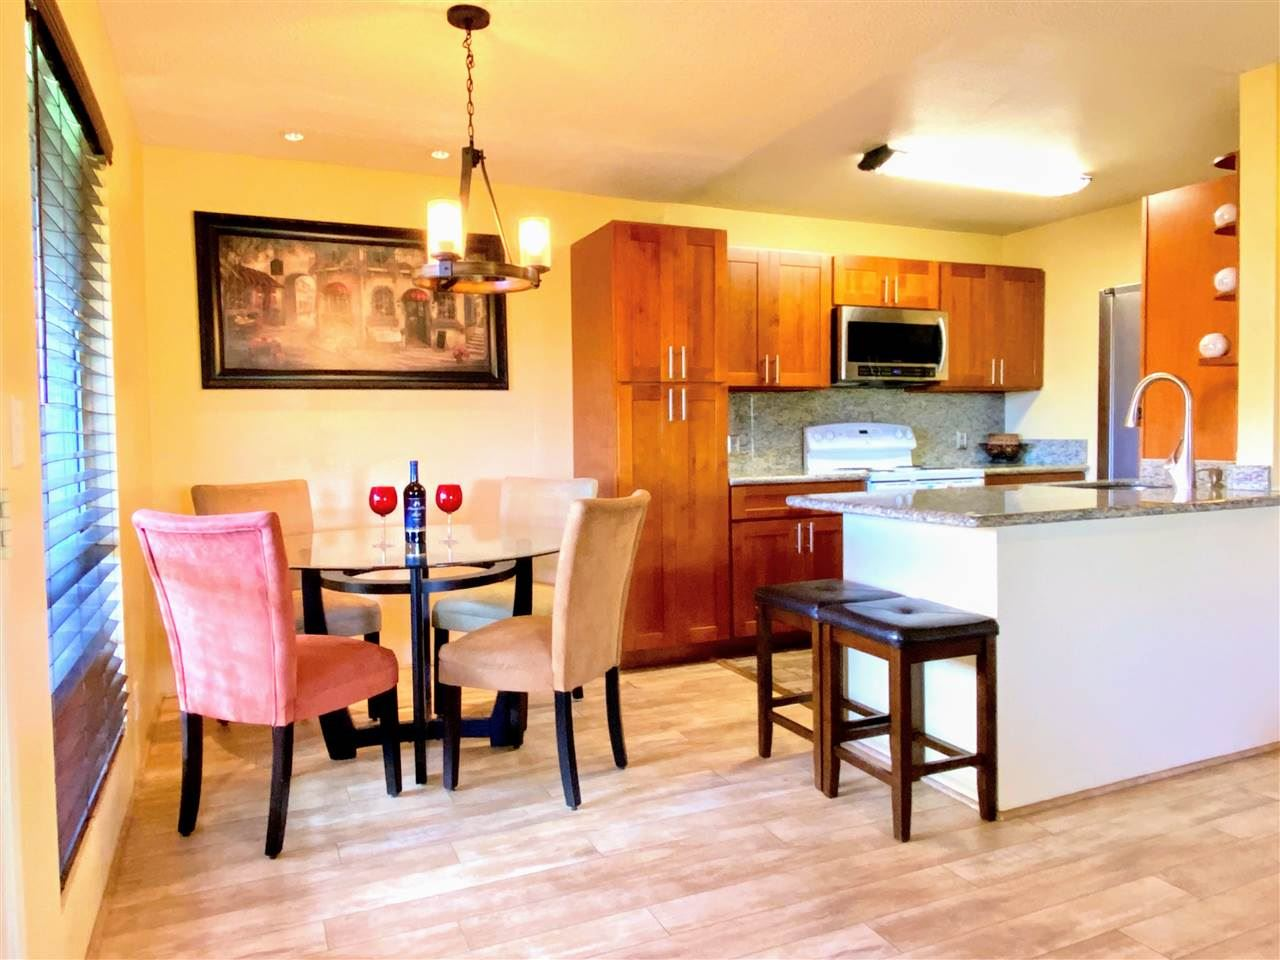 Photo of 140 Uwapo Rd #10-202, Kihei, HI 96753-7451 (MLS # 391024)